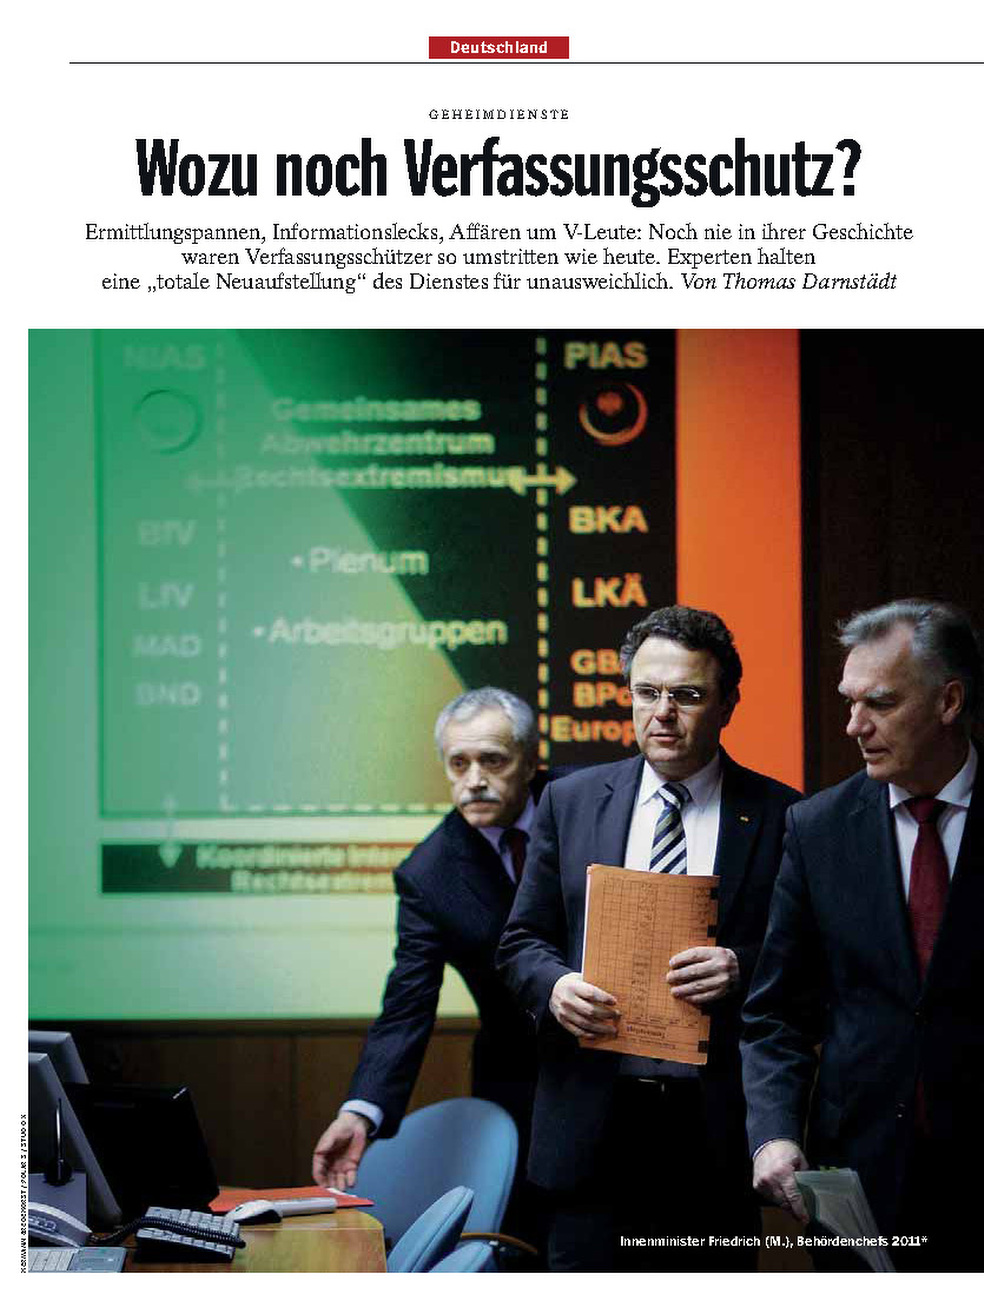 Der SPIEGEL, Germany, May 27, 2013